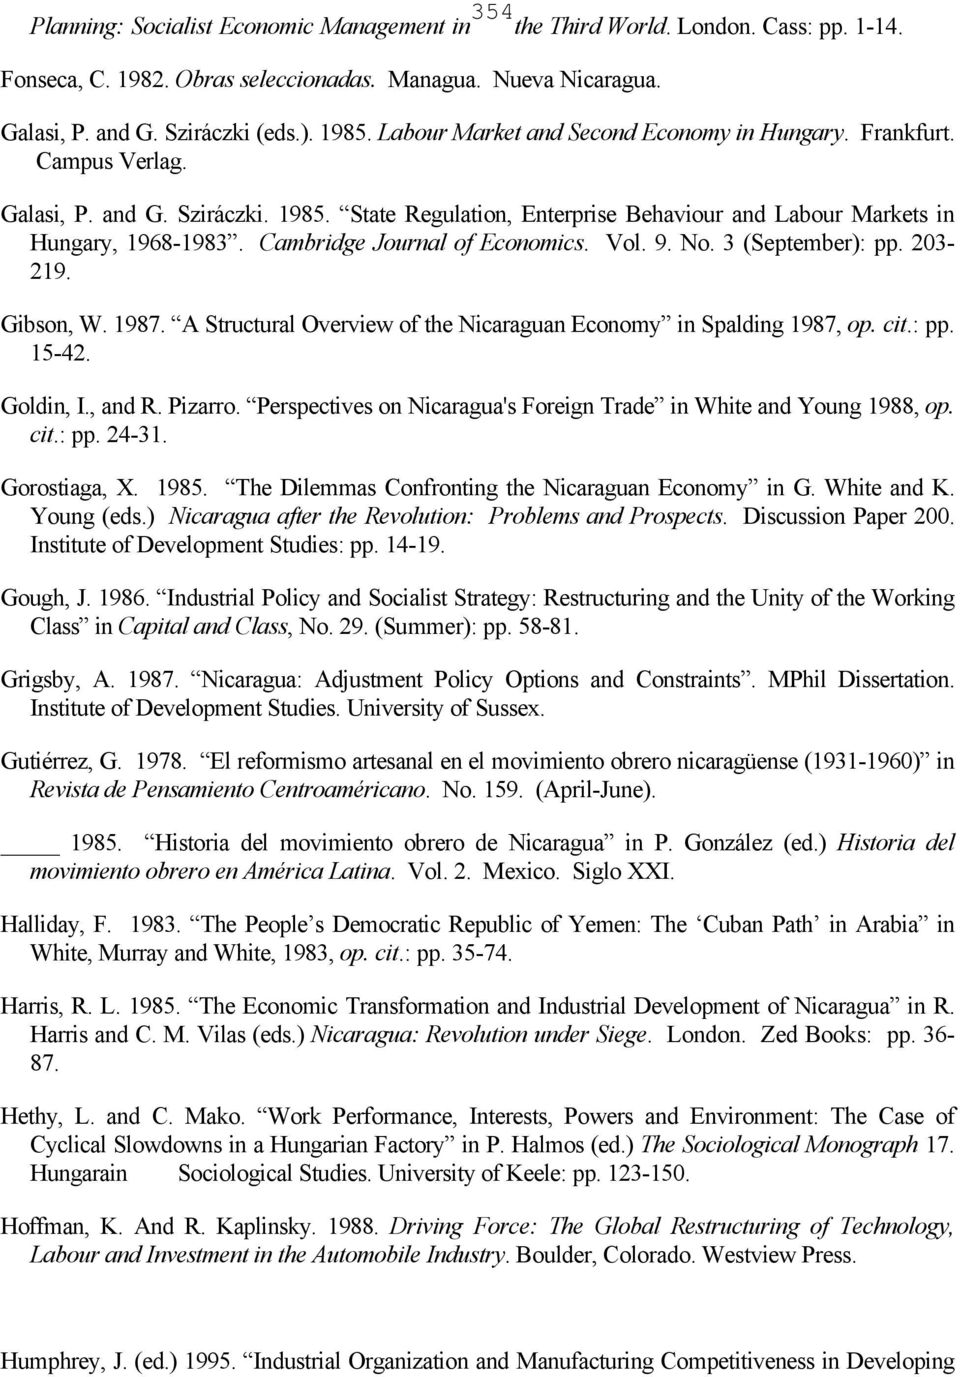 Cambridge Journal of Economics. Vol. 9. No. 3 (September): pp. 203-219. Gibson, W. 1987. A Structural Overview of the Nicaraguan Economy in Spalding 1987, op. cit.: pp. 15-42. Goldin, I., and R.